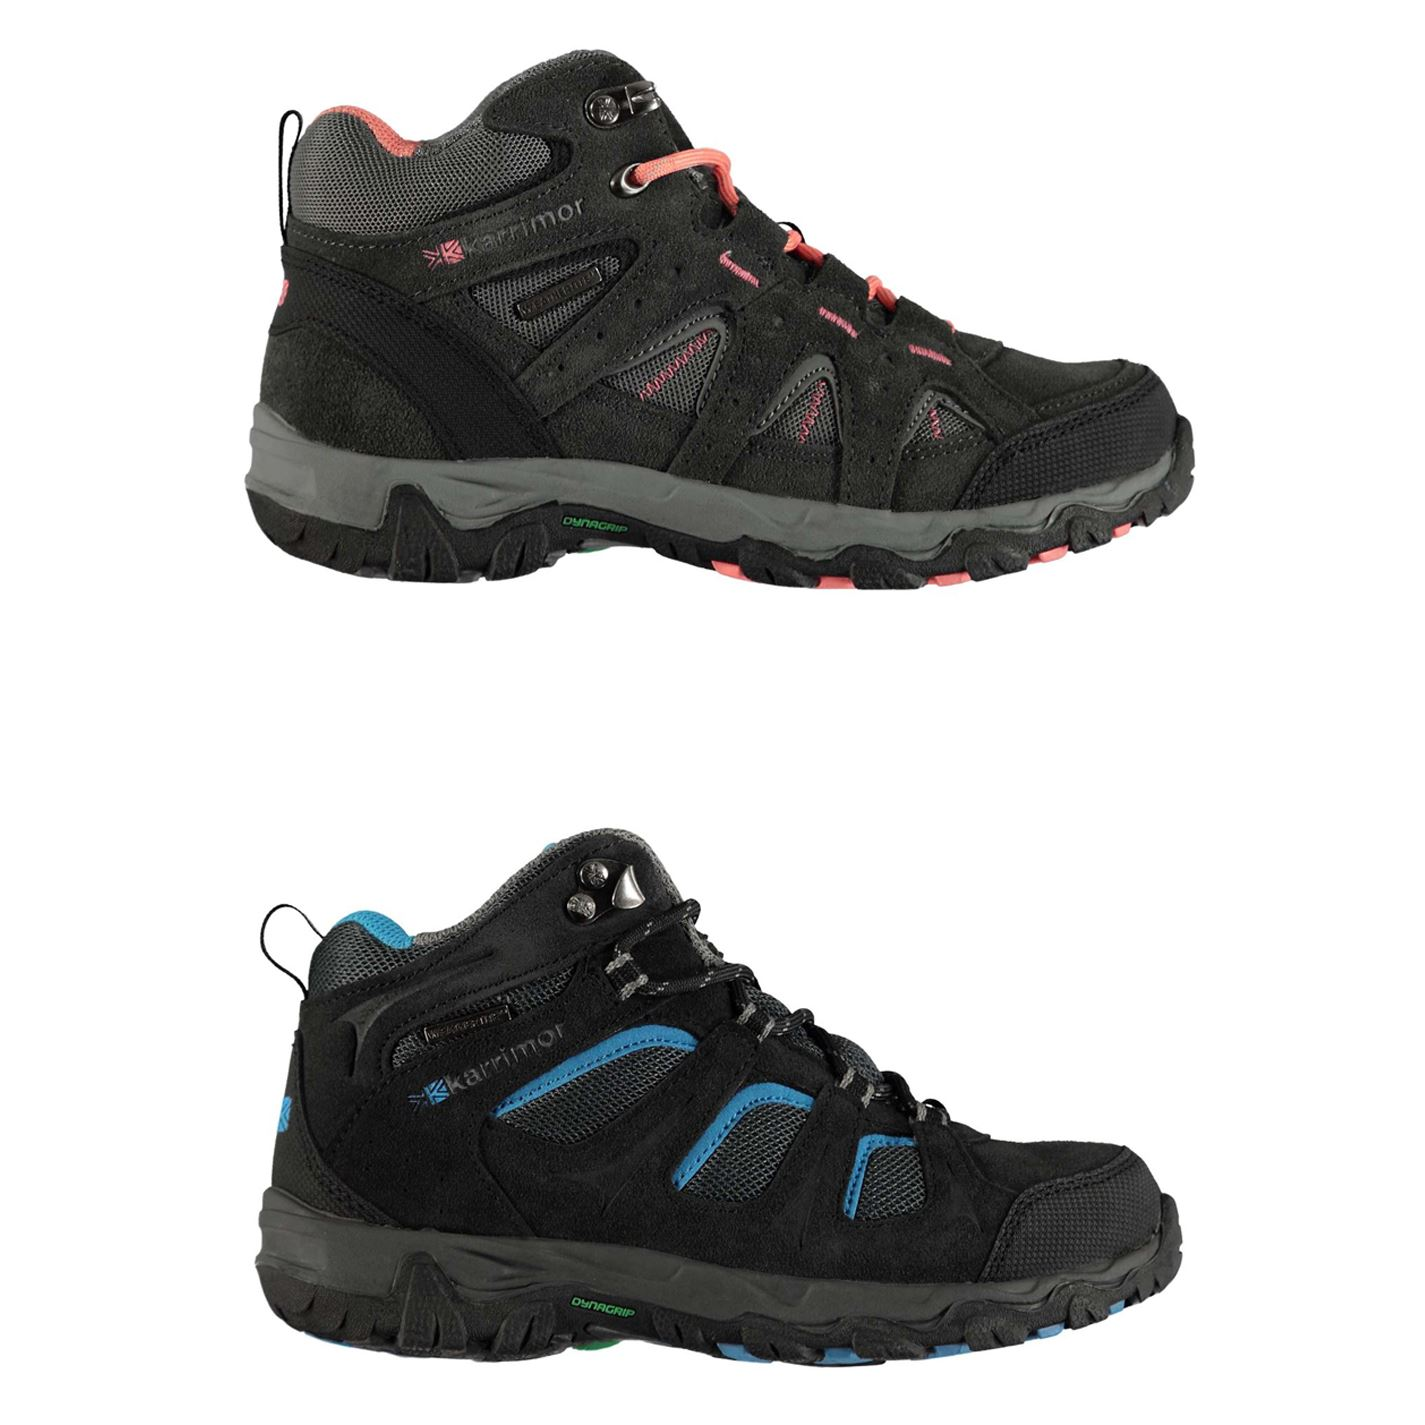 b2ba4399f0b Details about Karrimor Mount Mid Top Walking Boots Childs Boys Hiking  Trekking Shoes